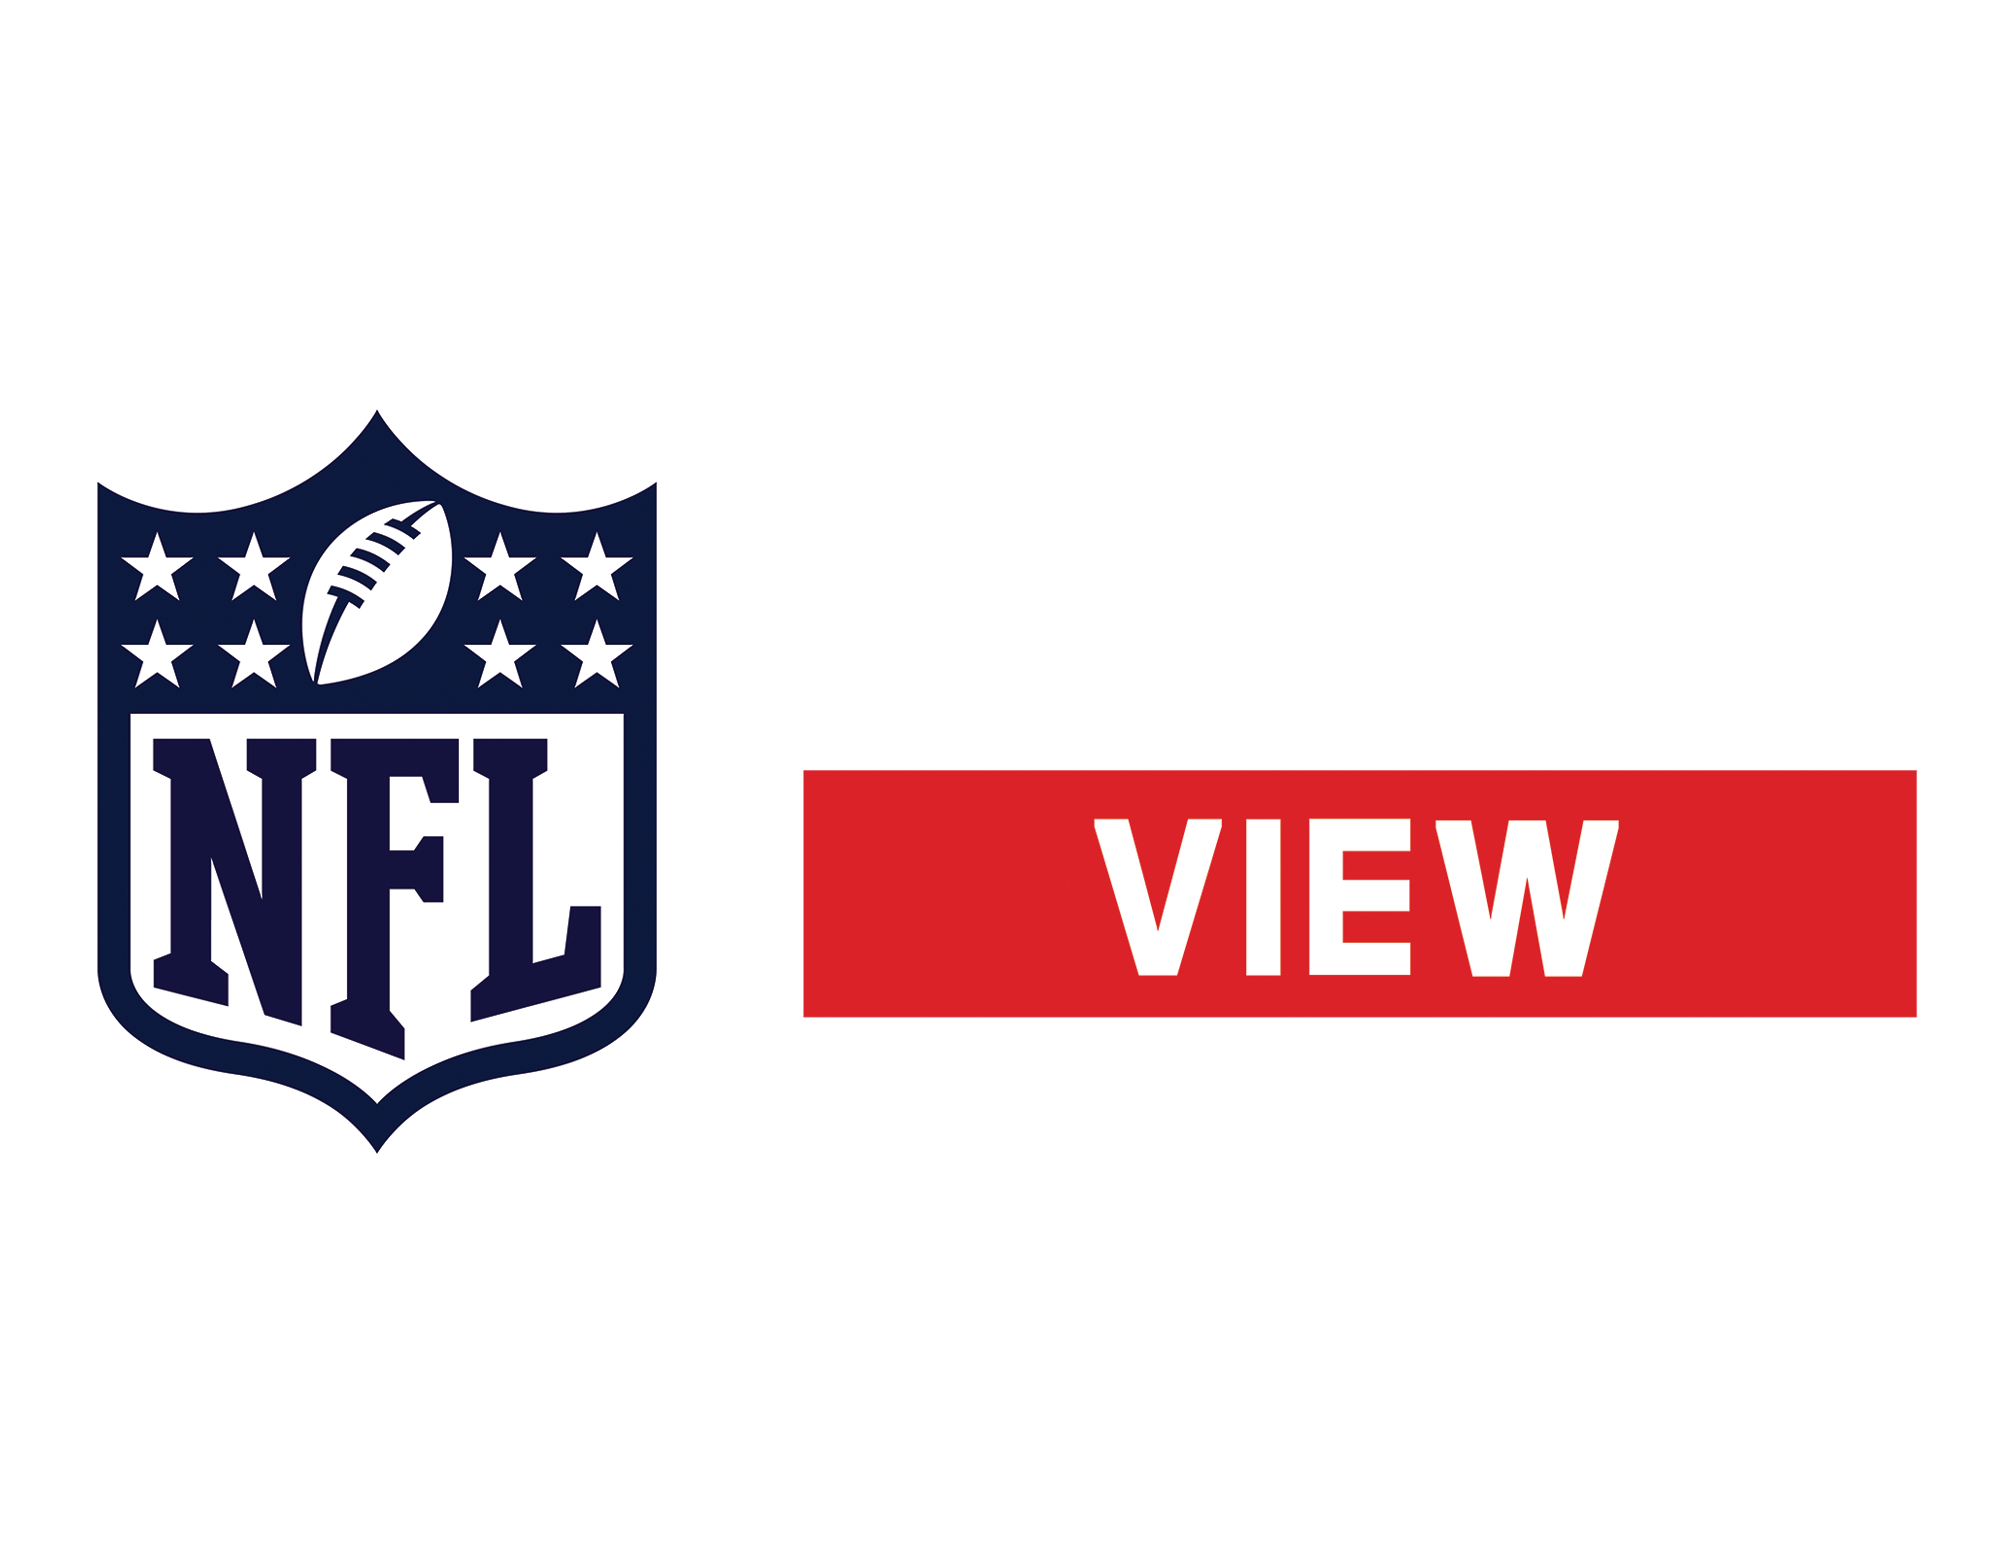 NFL GAMEDAY VIEW | FRIDAYS 8PM ET